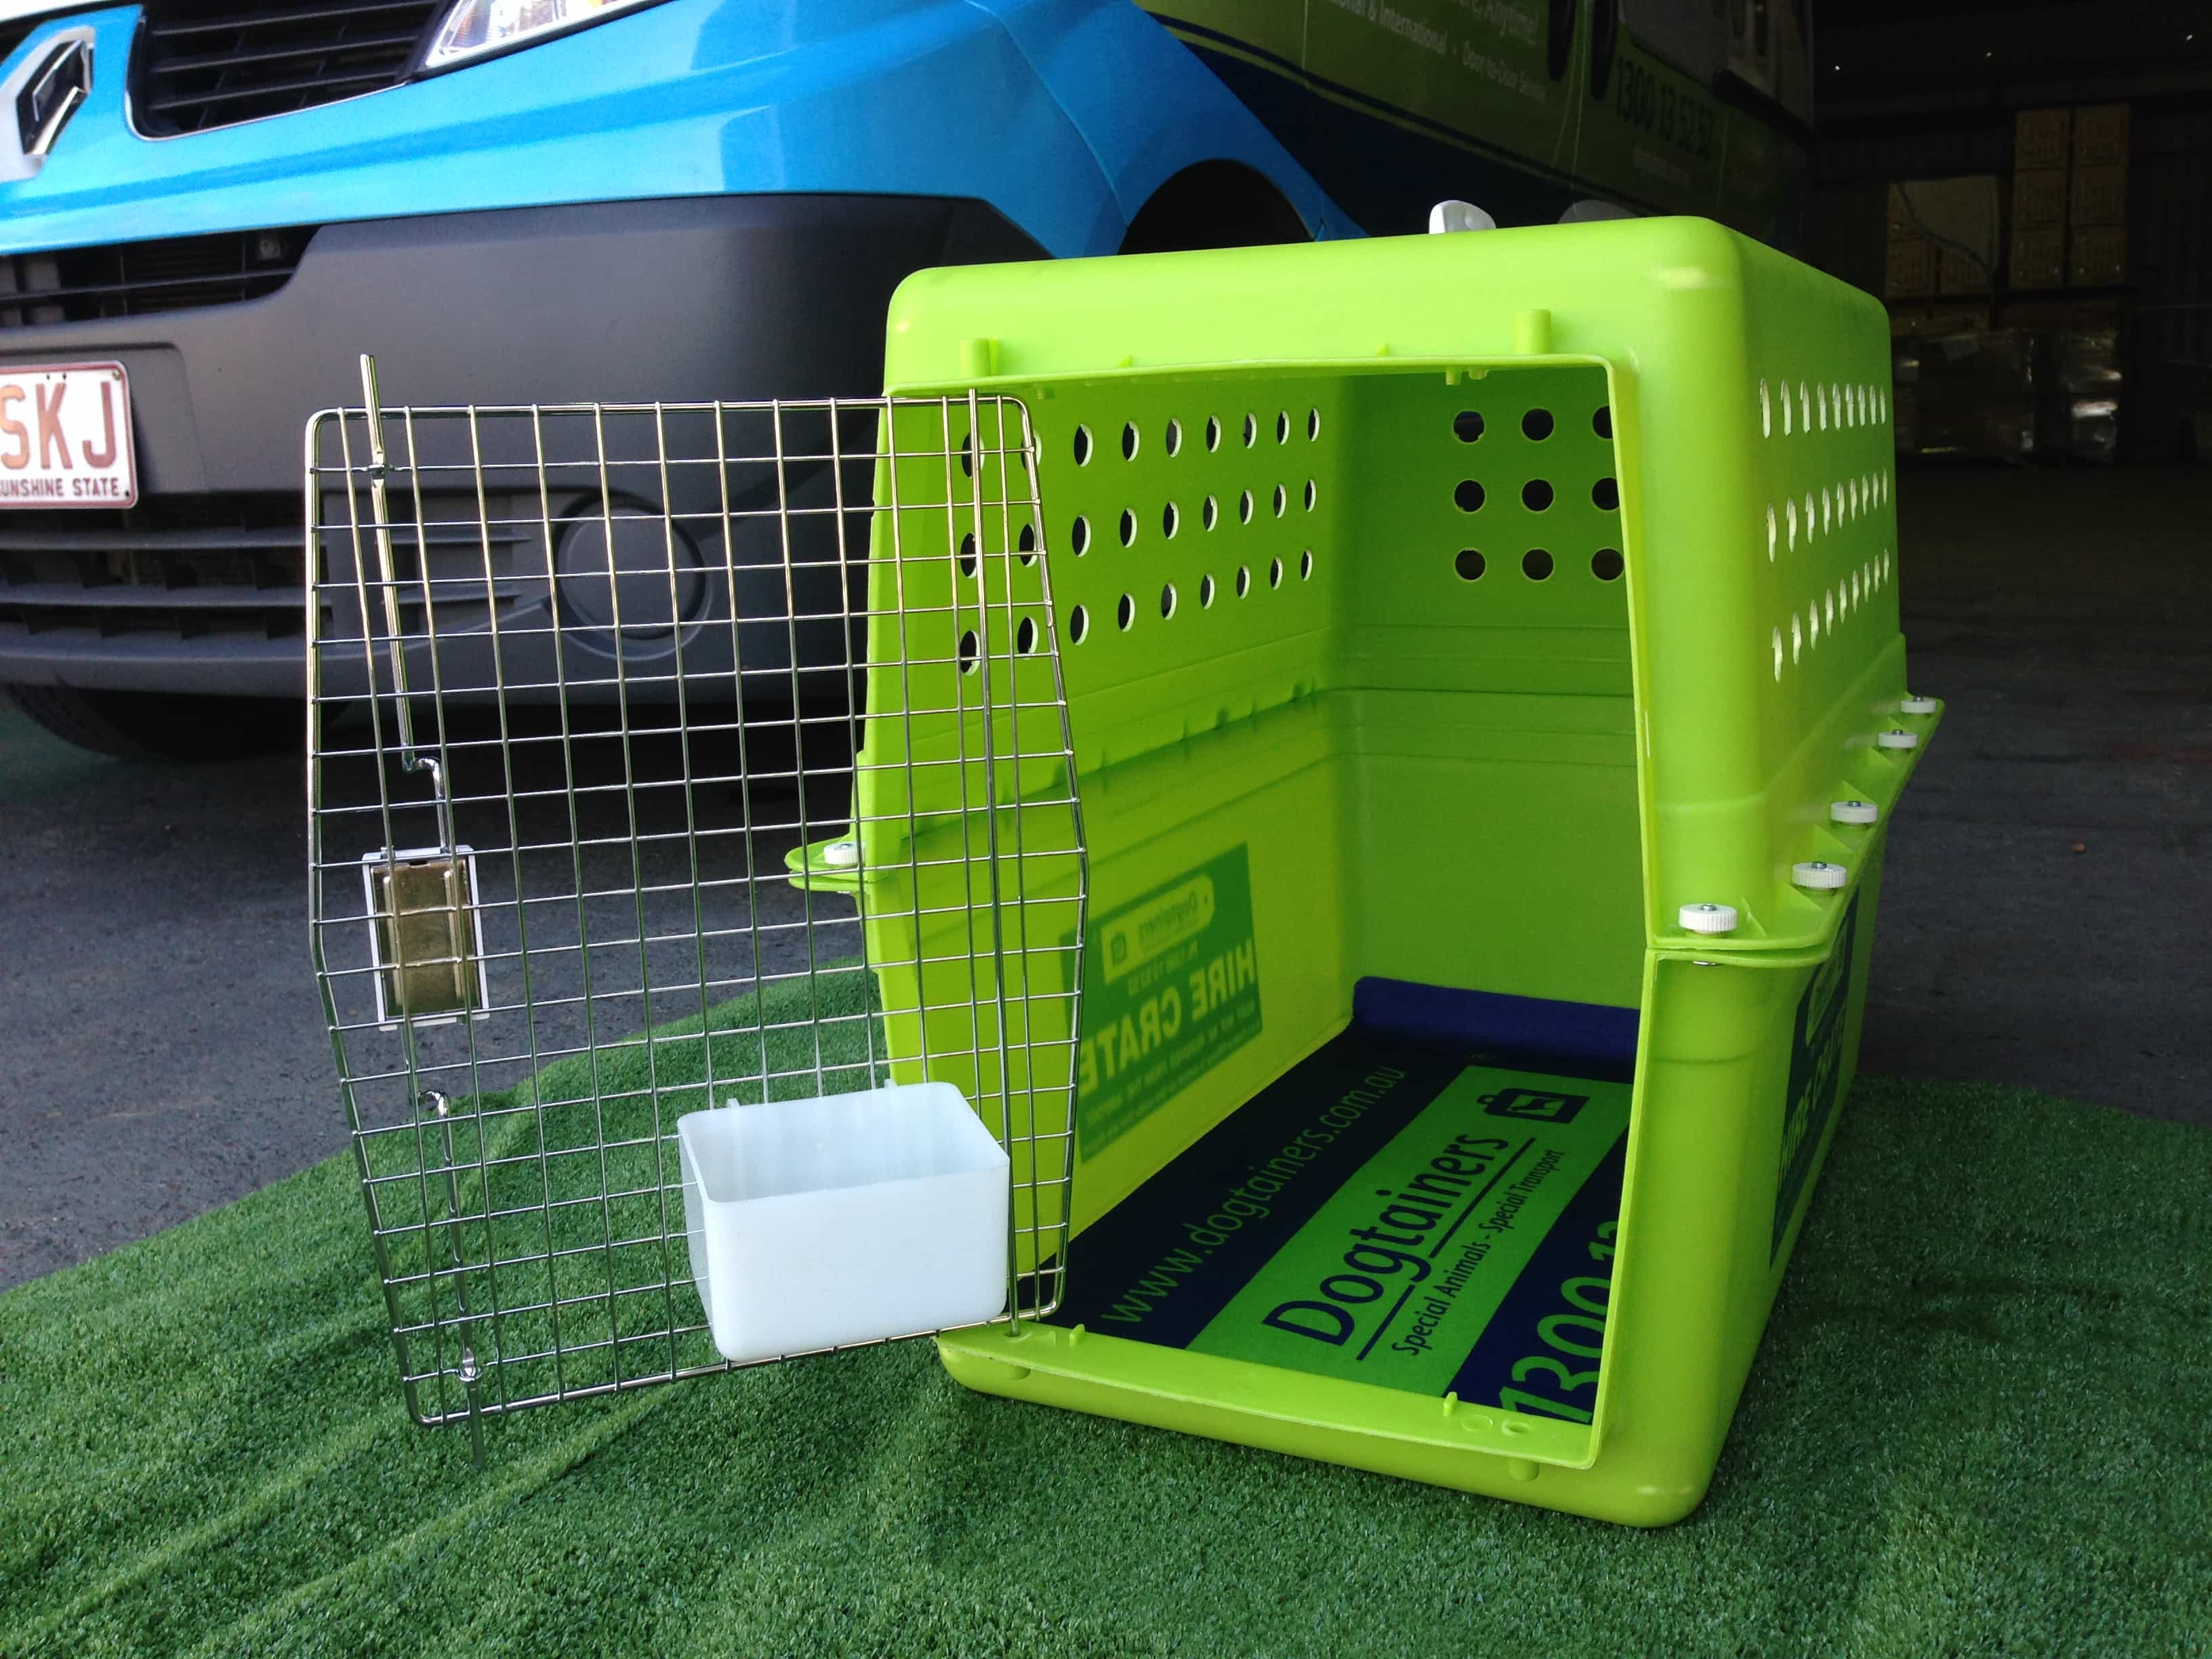 Vets 4 Pets Qatar - International pet relocation services in